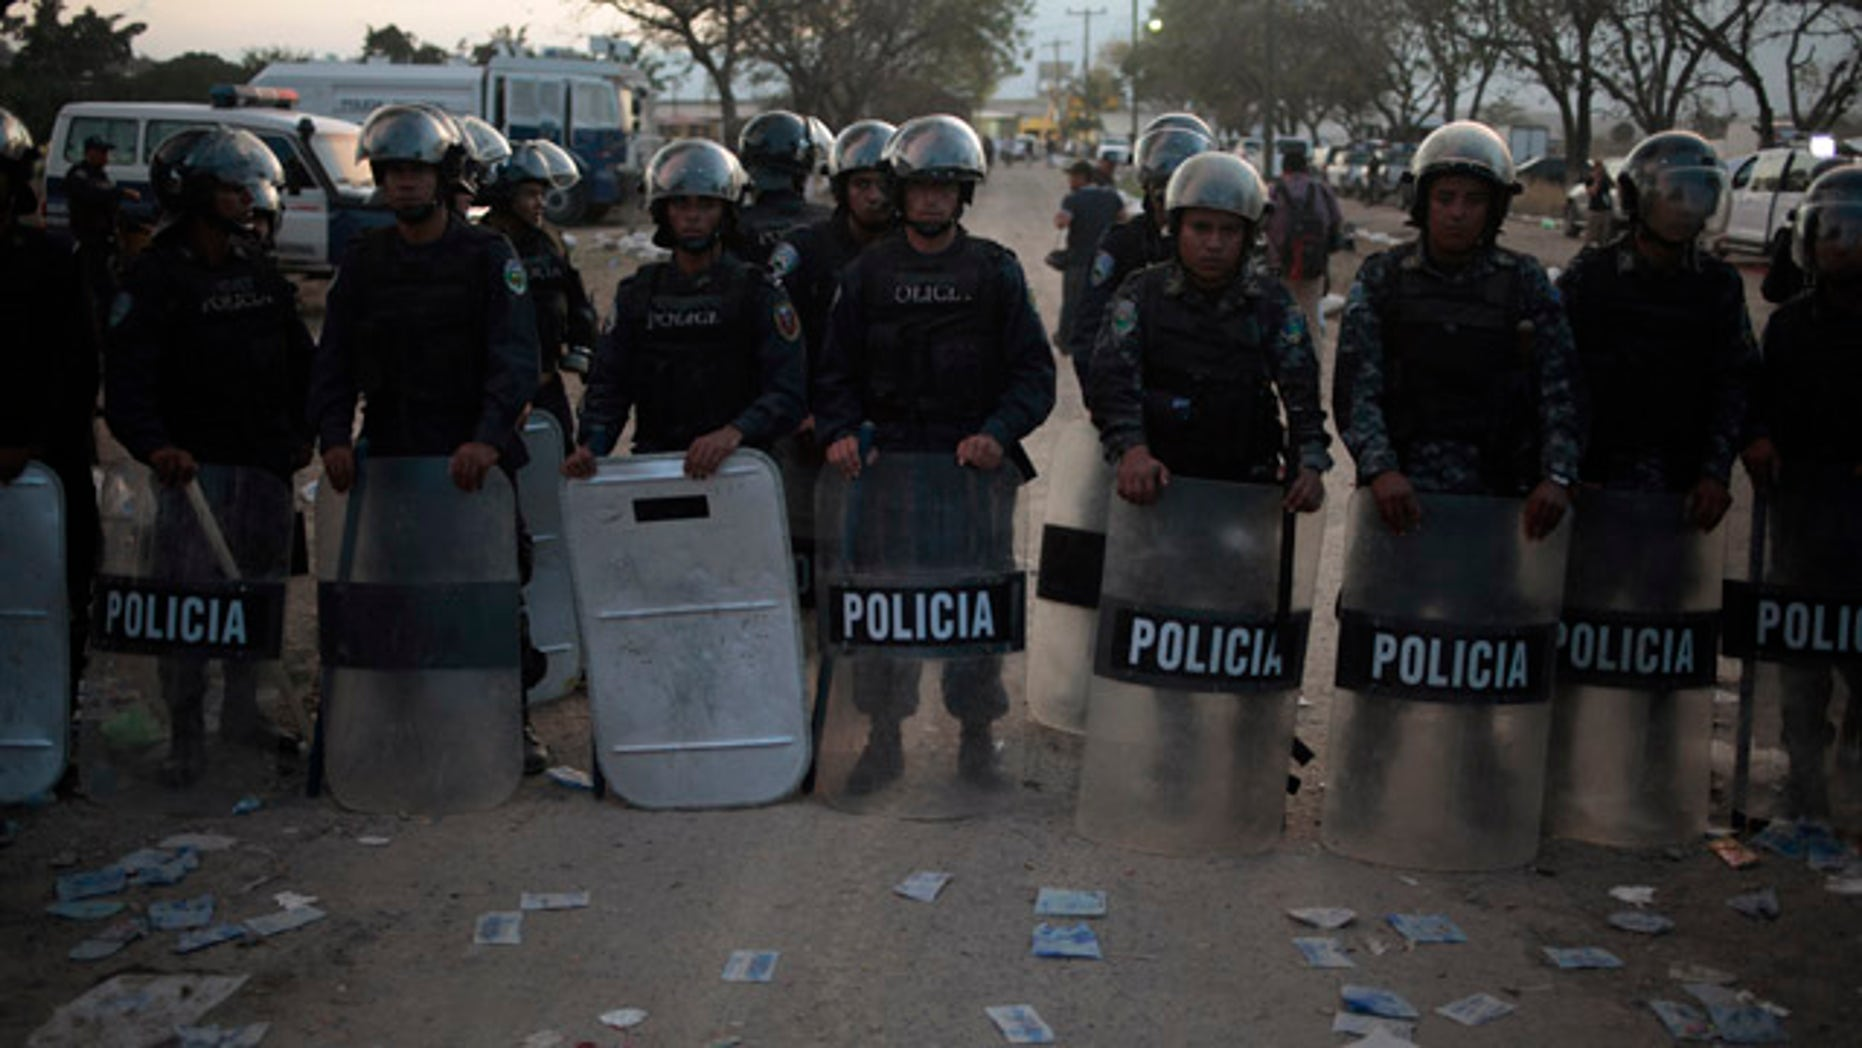 Feb. 15: Policemen stand guard outside a jail in Comayagua, about 45 miles north of the capital Tegucigalpa.